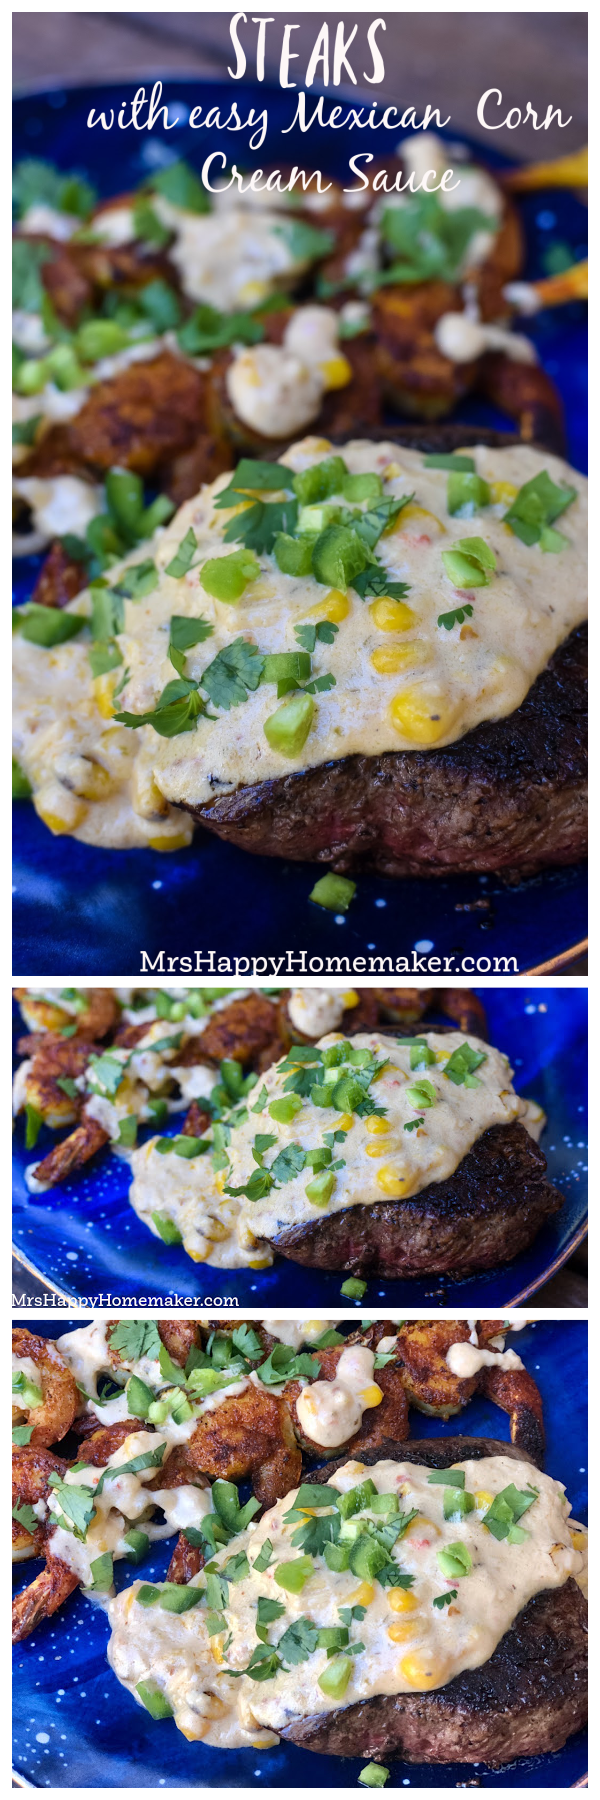 Steaks with Mexican corn cream sauce